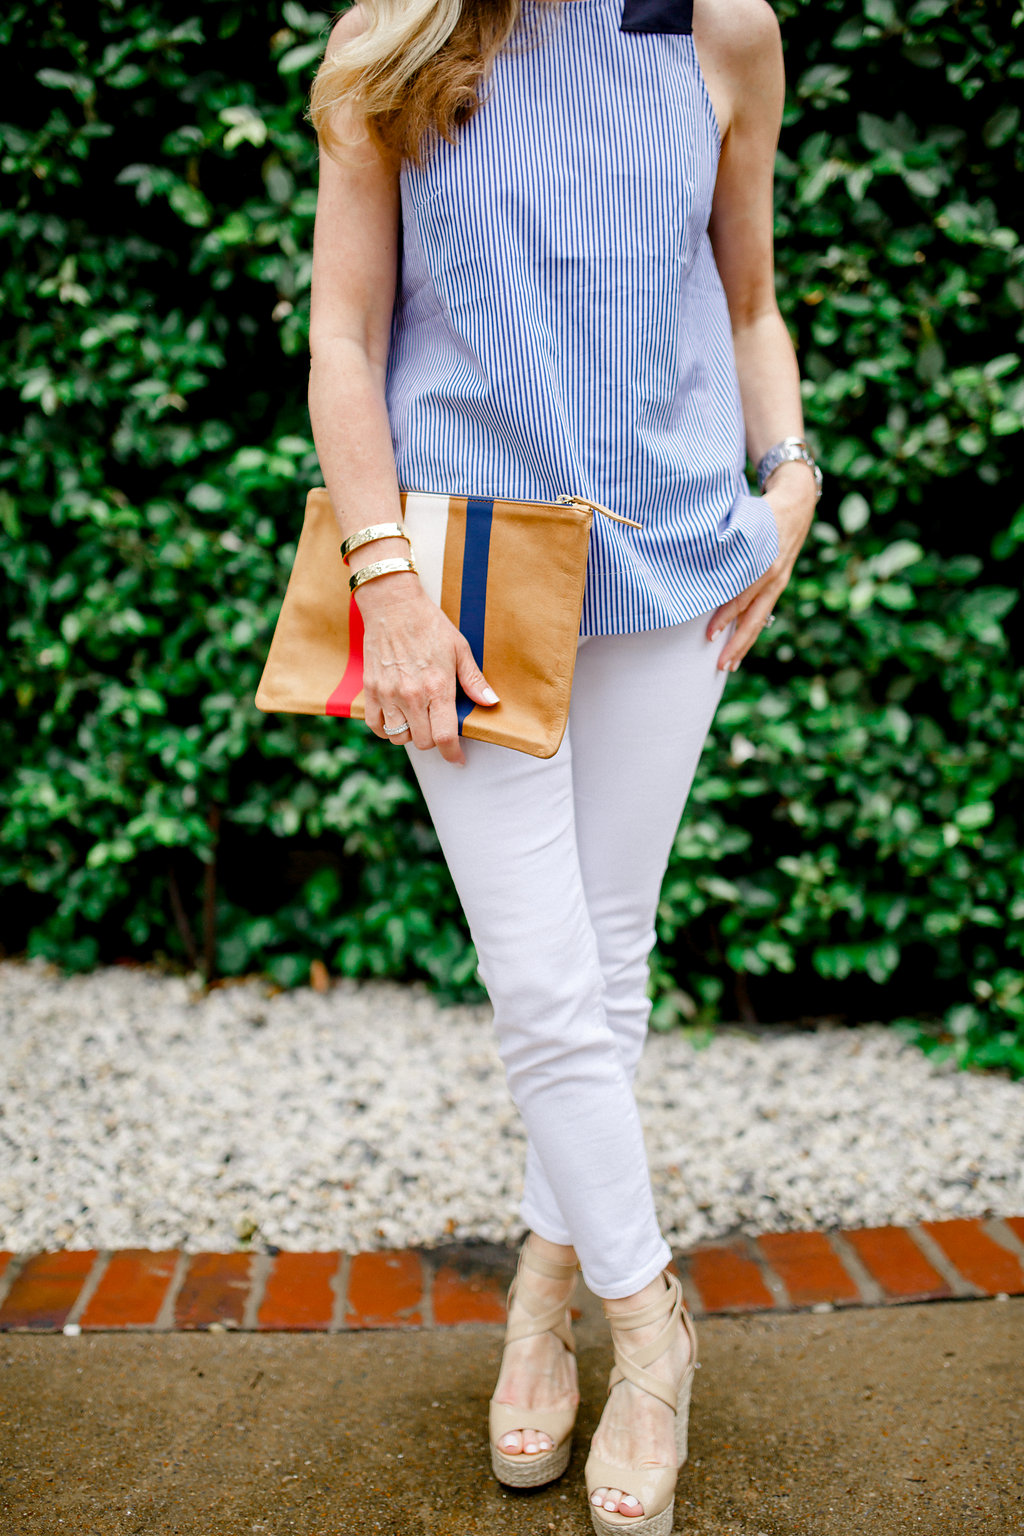 Best Cropped White Jean, Petite Skinny Jean, Petite Cropped Jeans, Petite White Jeans, Clare V. Clutch, Blue and White Stipes